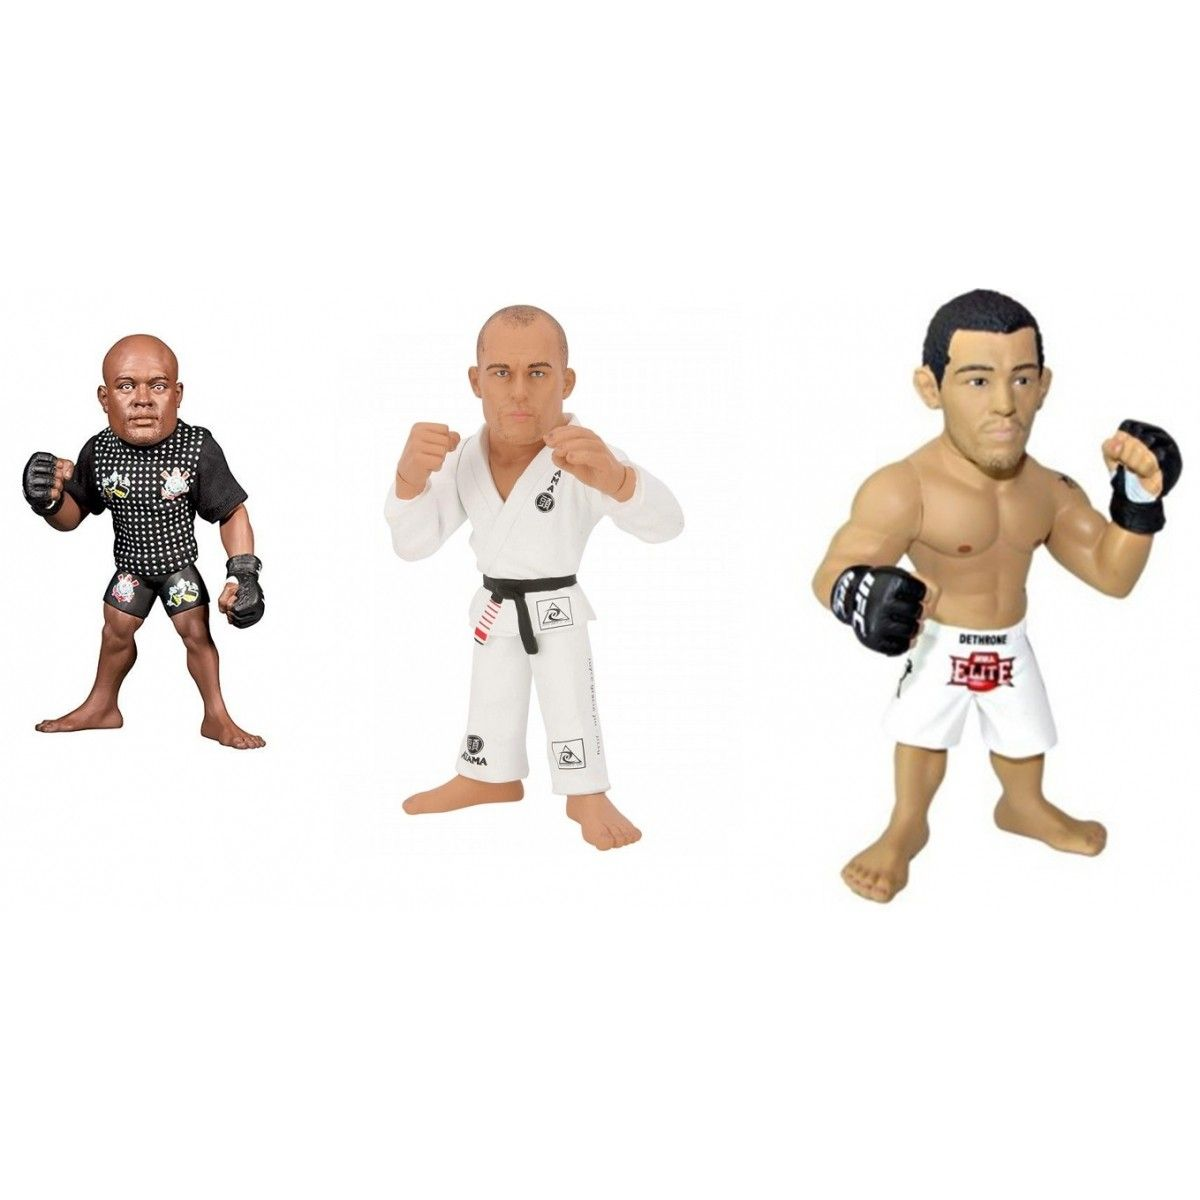 Kit 3 Action Figure Ultimate Fighting Championship Campeões Brasileiros - Spider Royce E Aldo